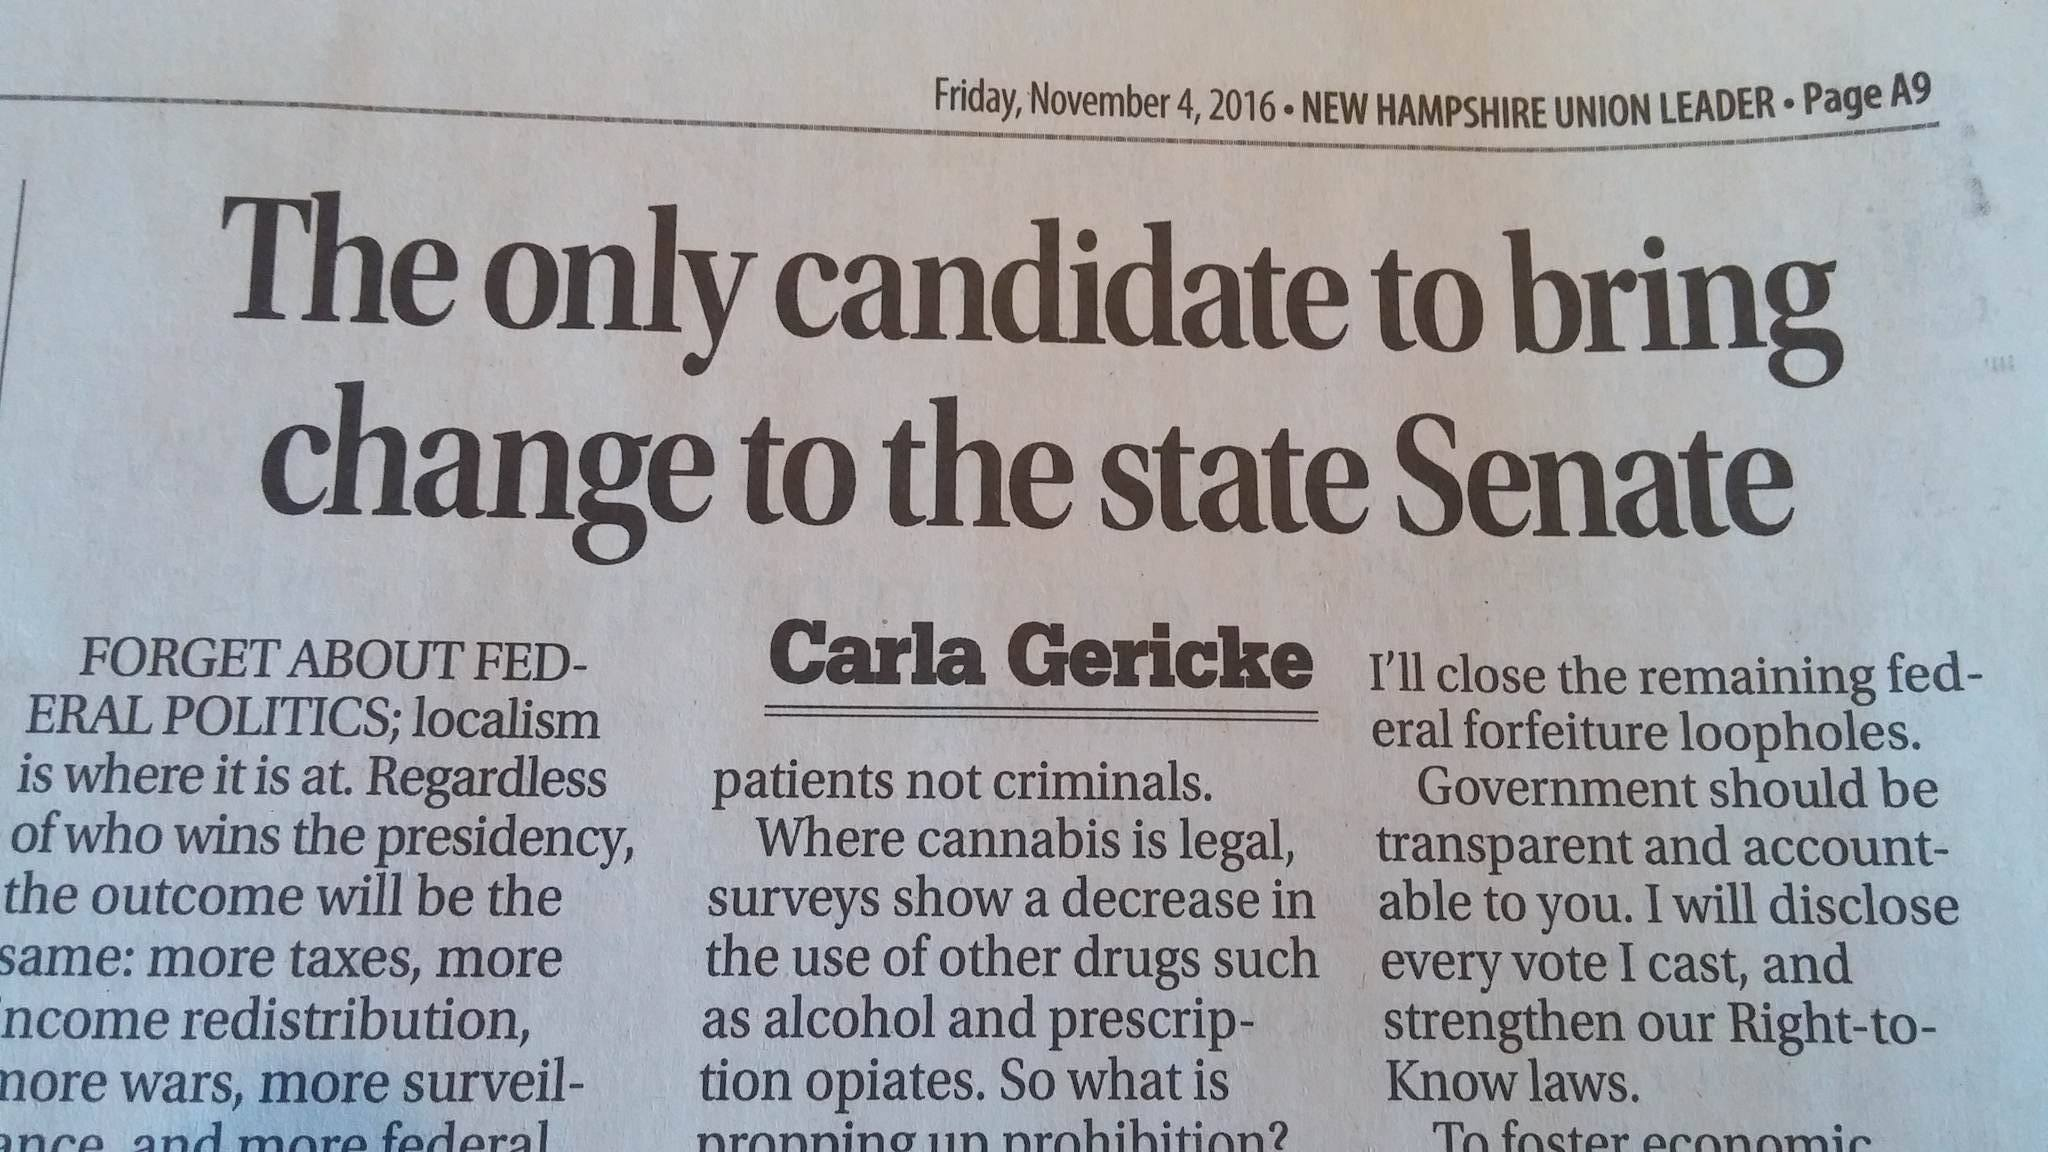 Carla Gericke: The only candidate to bring change to the state Senate